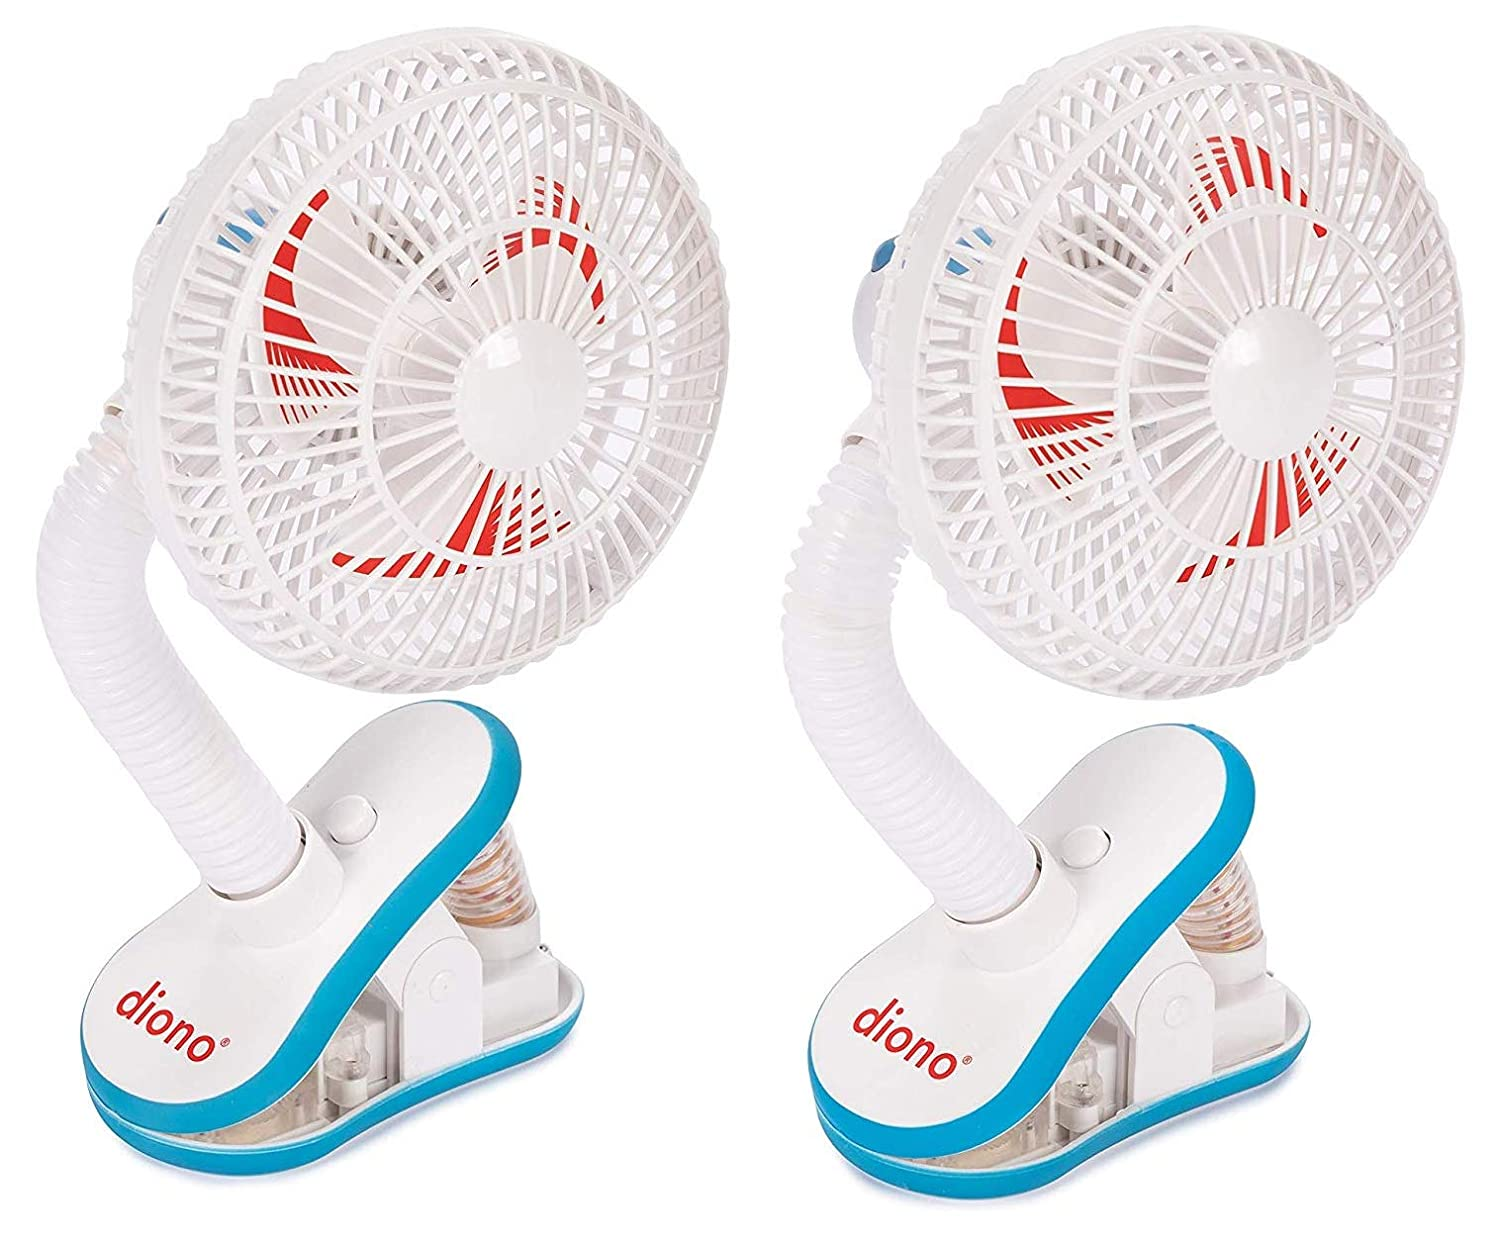 Diono Clip-on Baby Stroller Fan Mini Portable Battery operated Cooling Travel